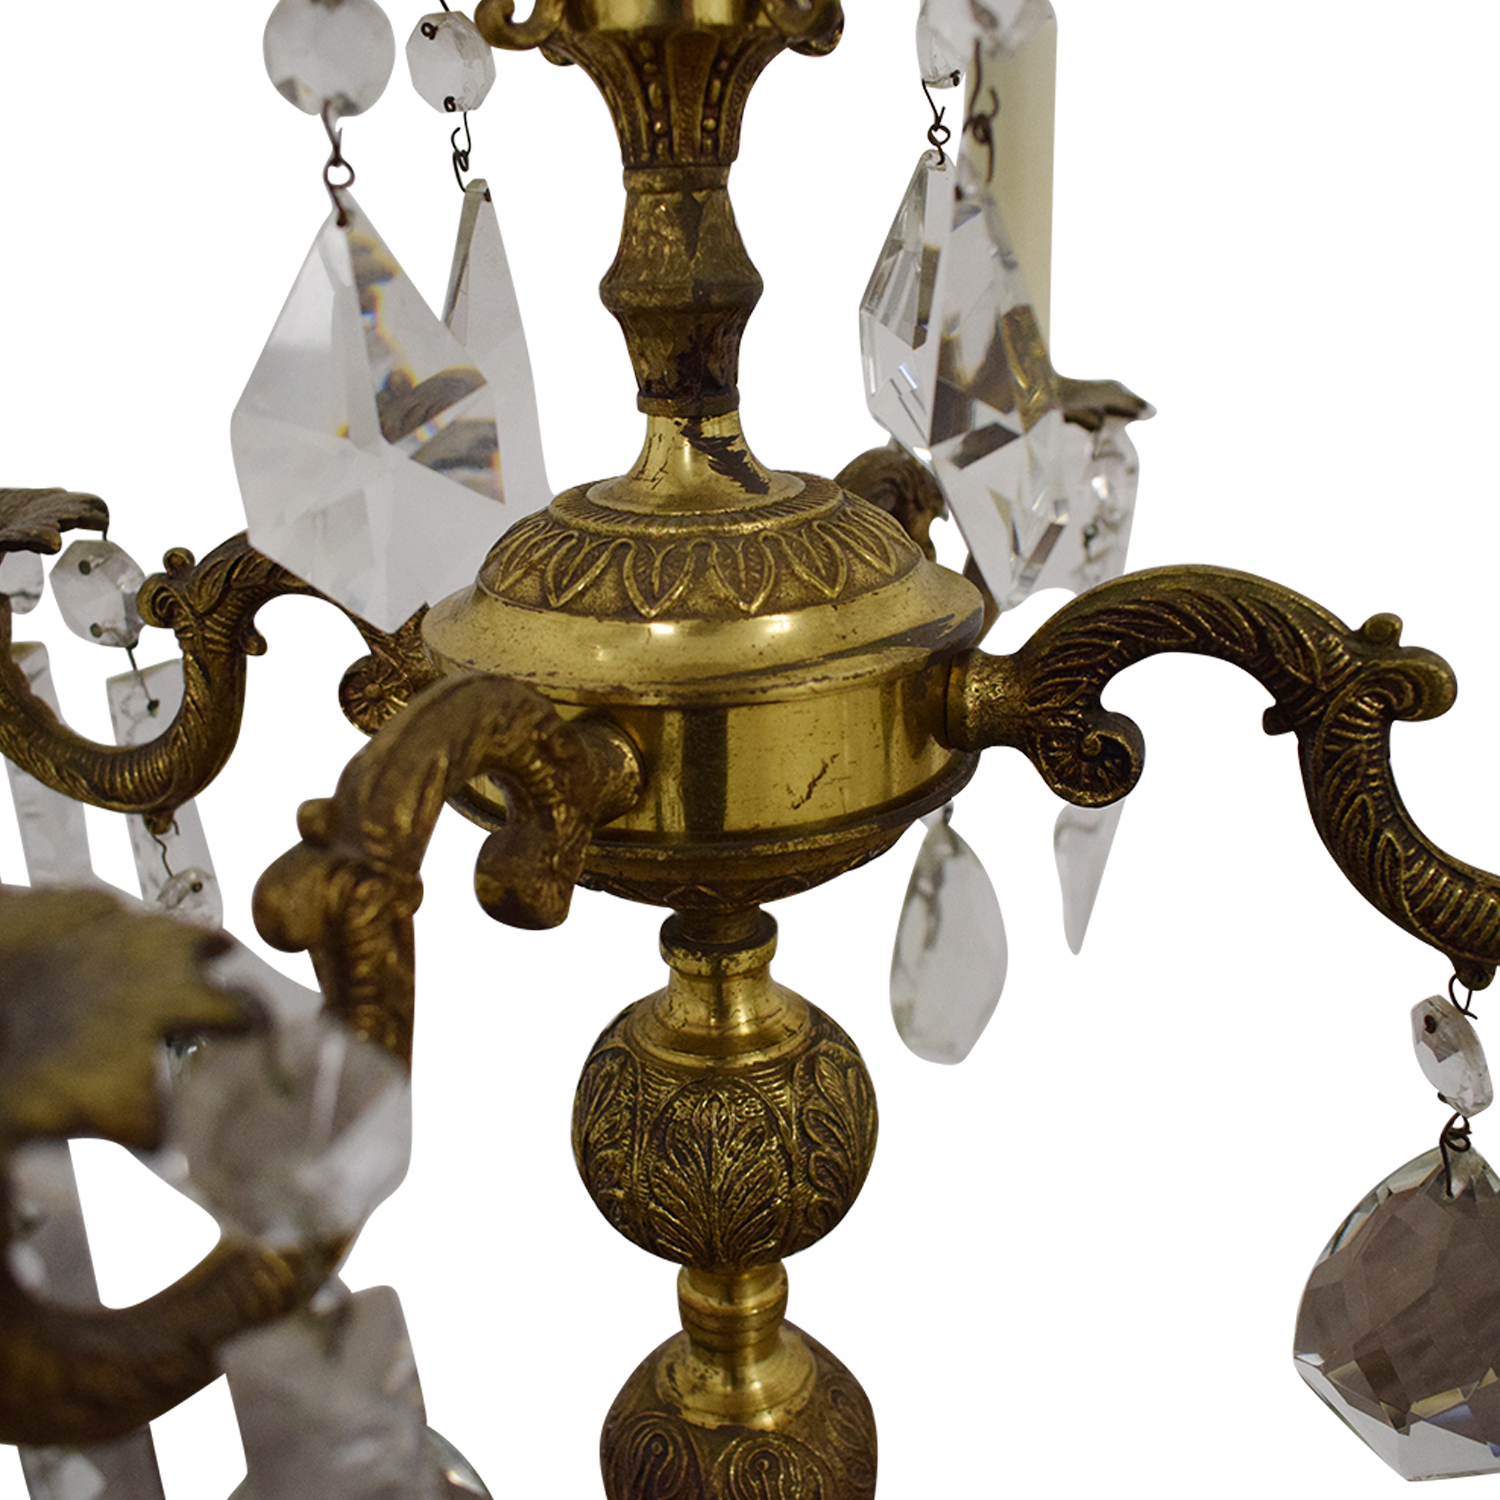 Chandelier Style Table Lamp dimensions